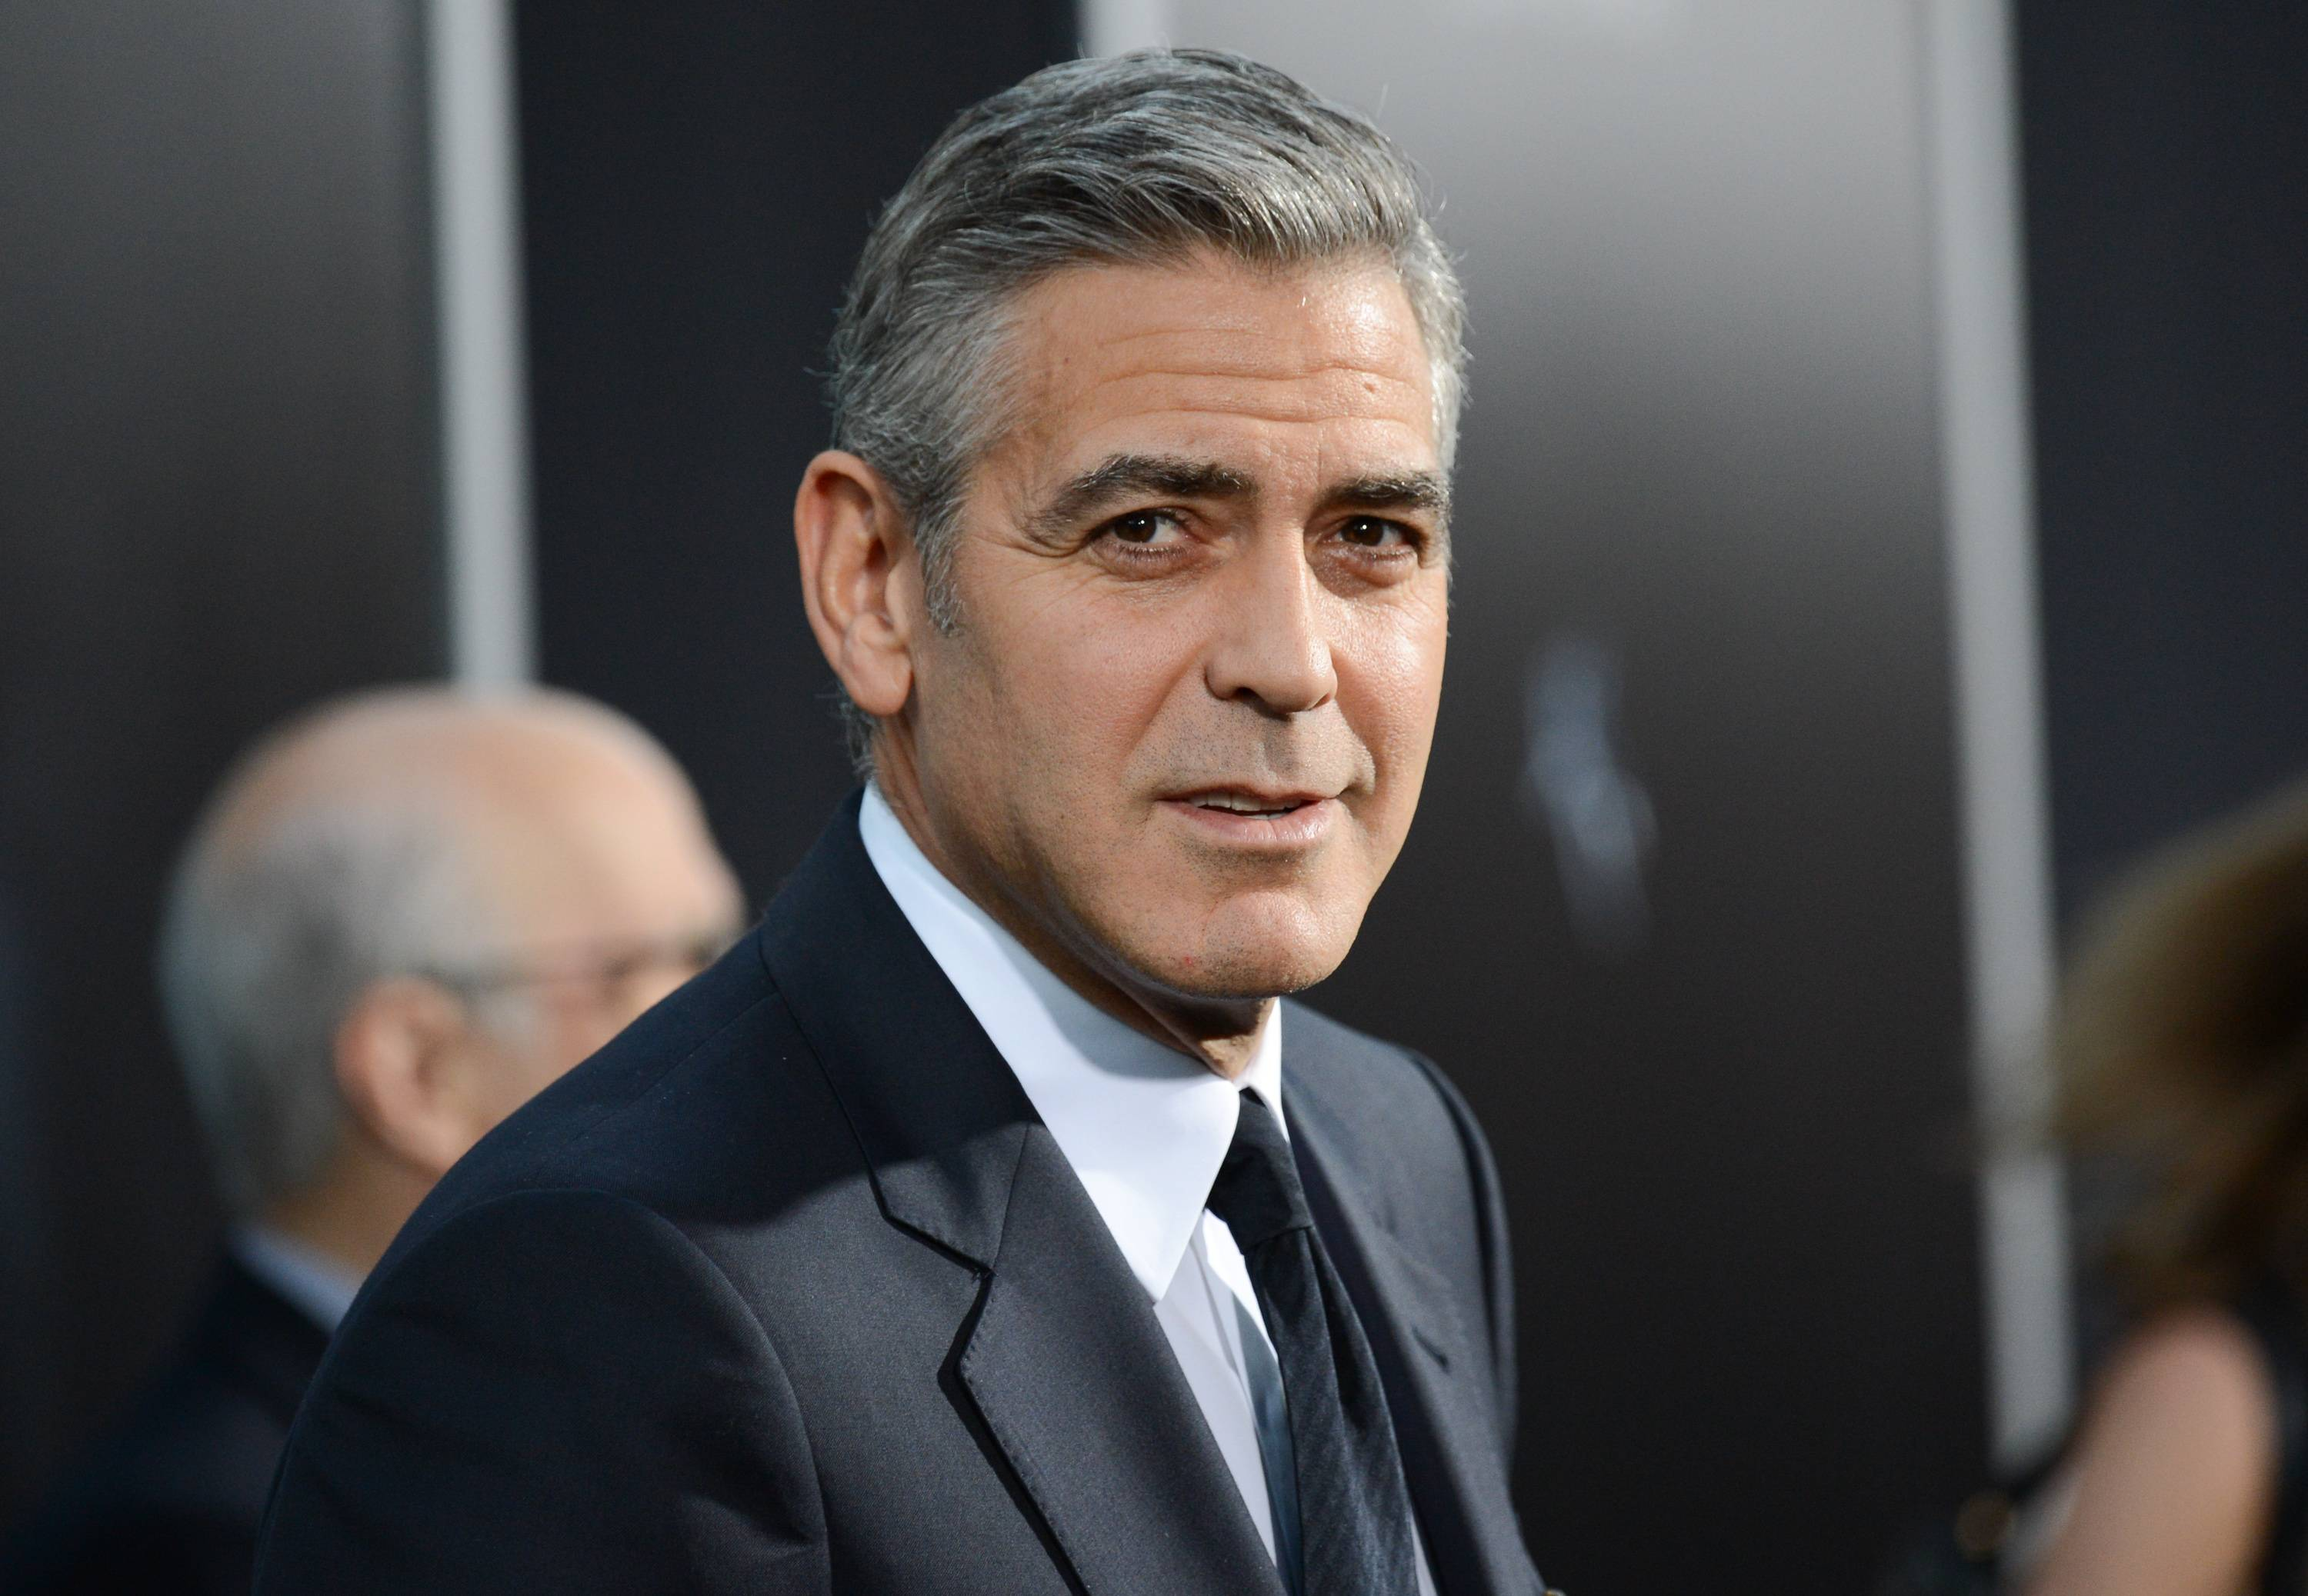 George Clooney has chastised a British newspaper over an article claiming his fiancee's mother disapproves of the impending marriage for religious reasons. Clooney said that the claims about his future mother-in-law Baria Alamuddin were untrue and irresponsible.